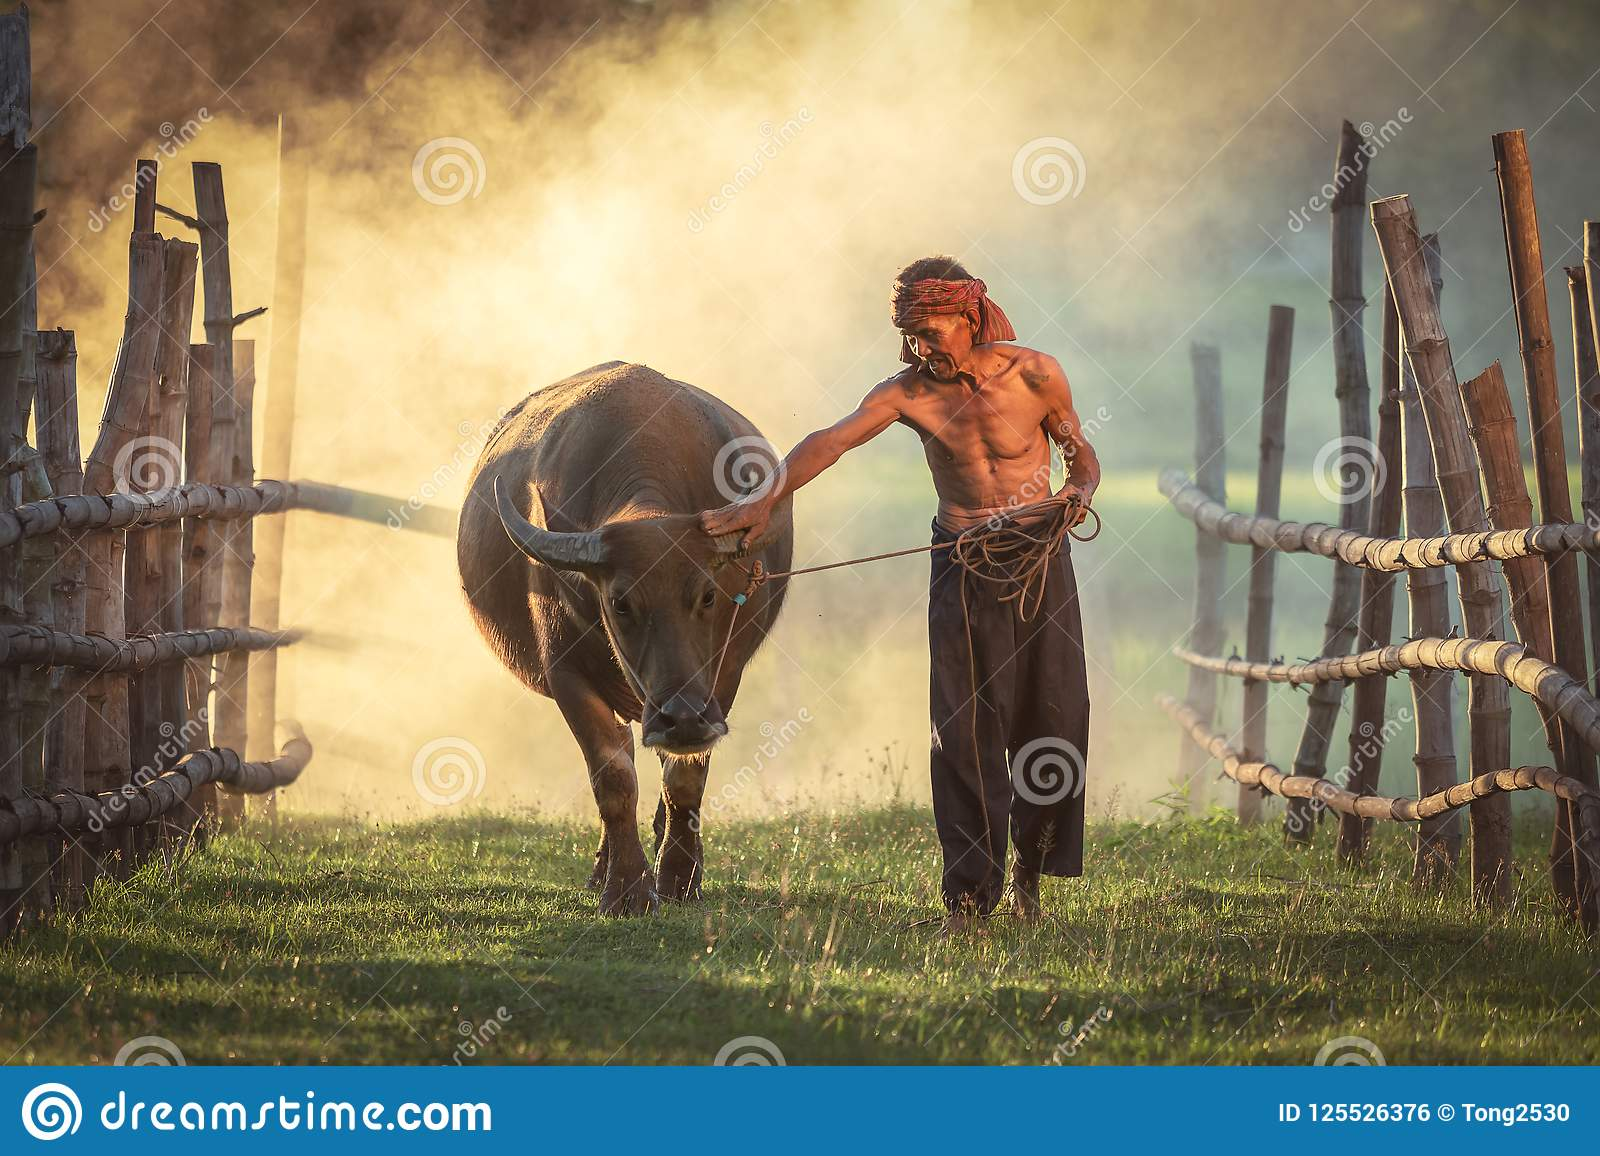 Amazing Love is love of peasants loyal to Buffalo, Thailand.